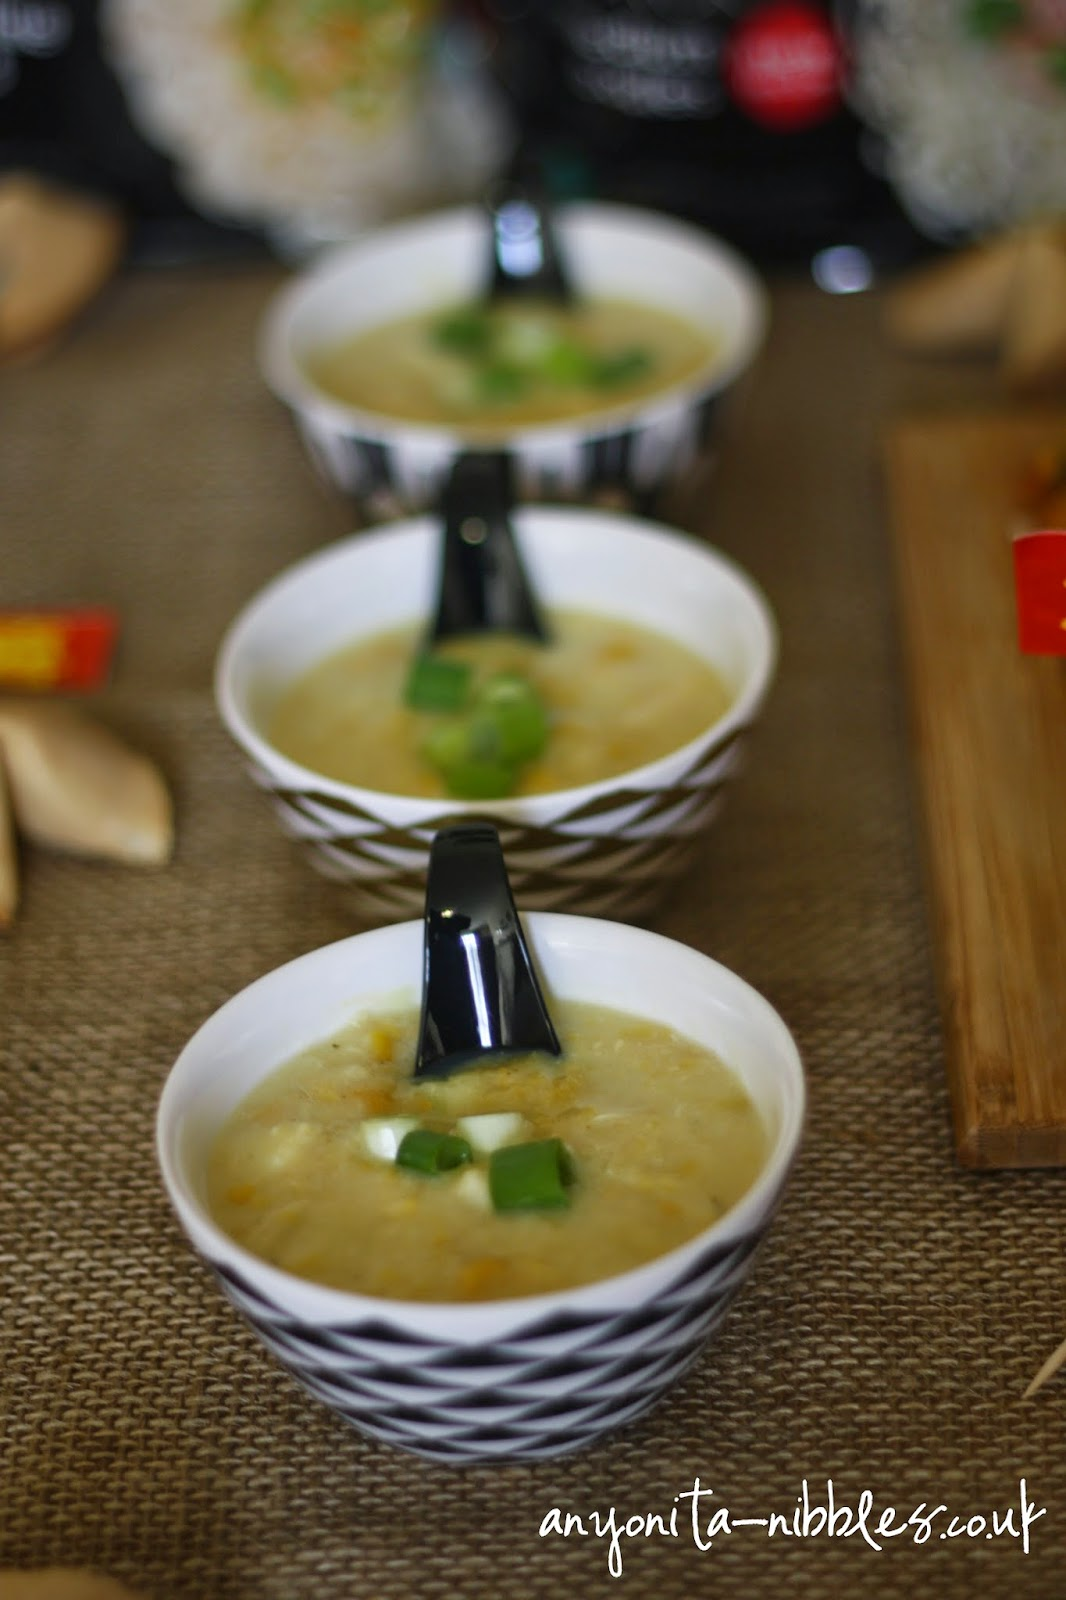 Chicken and sweetcorn soup from Anyonita-nibbles.co.uk